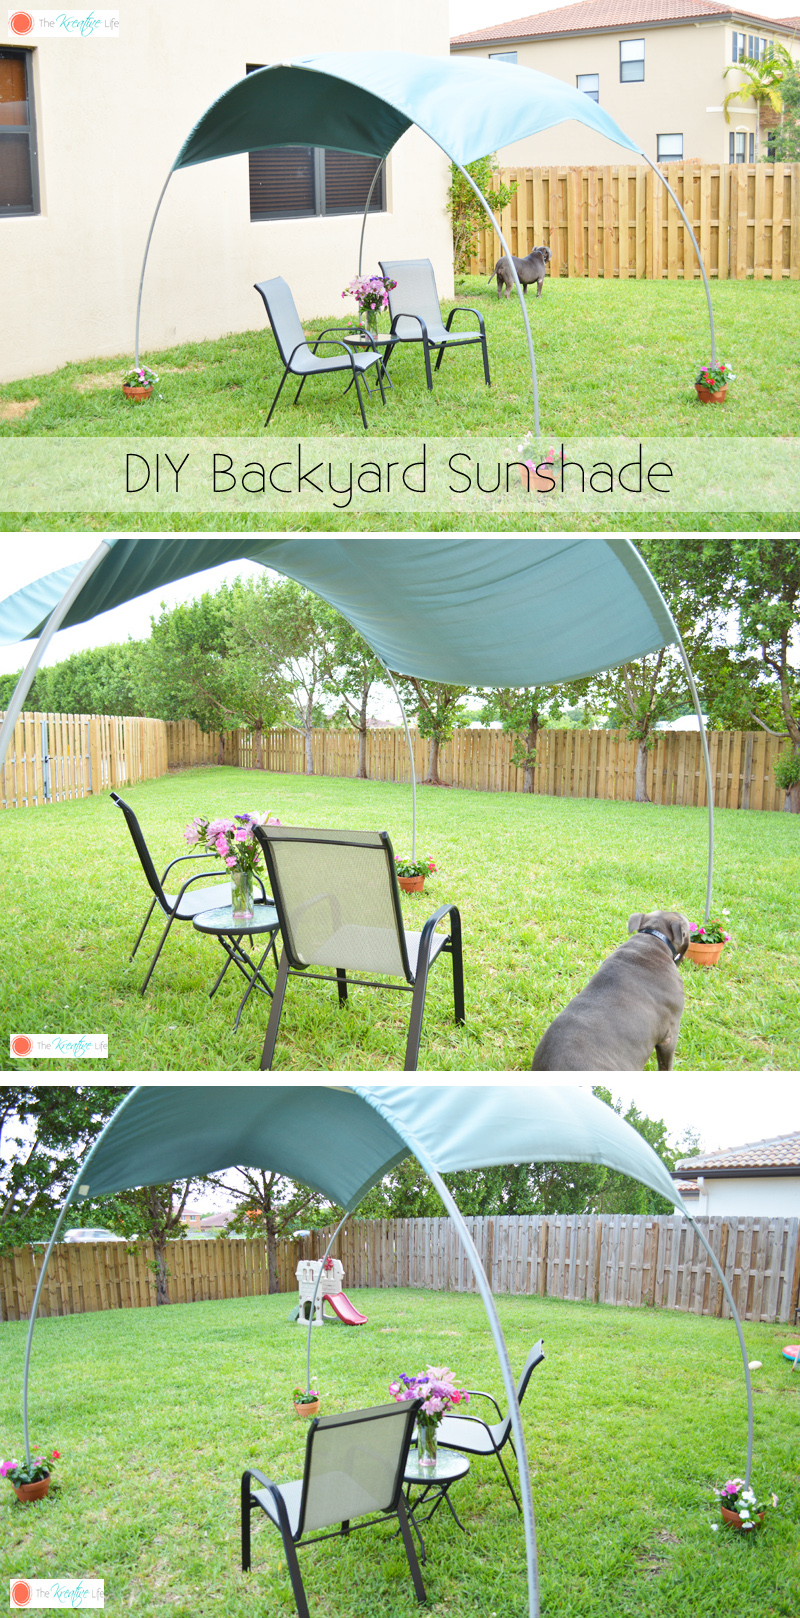 diy backyard sunshade the kreative life